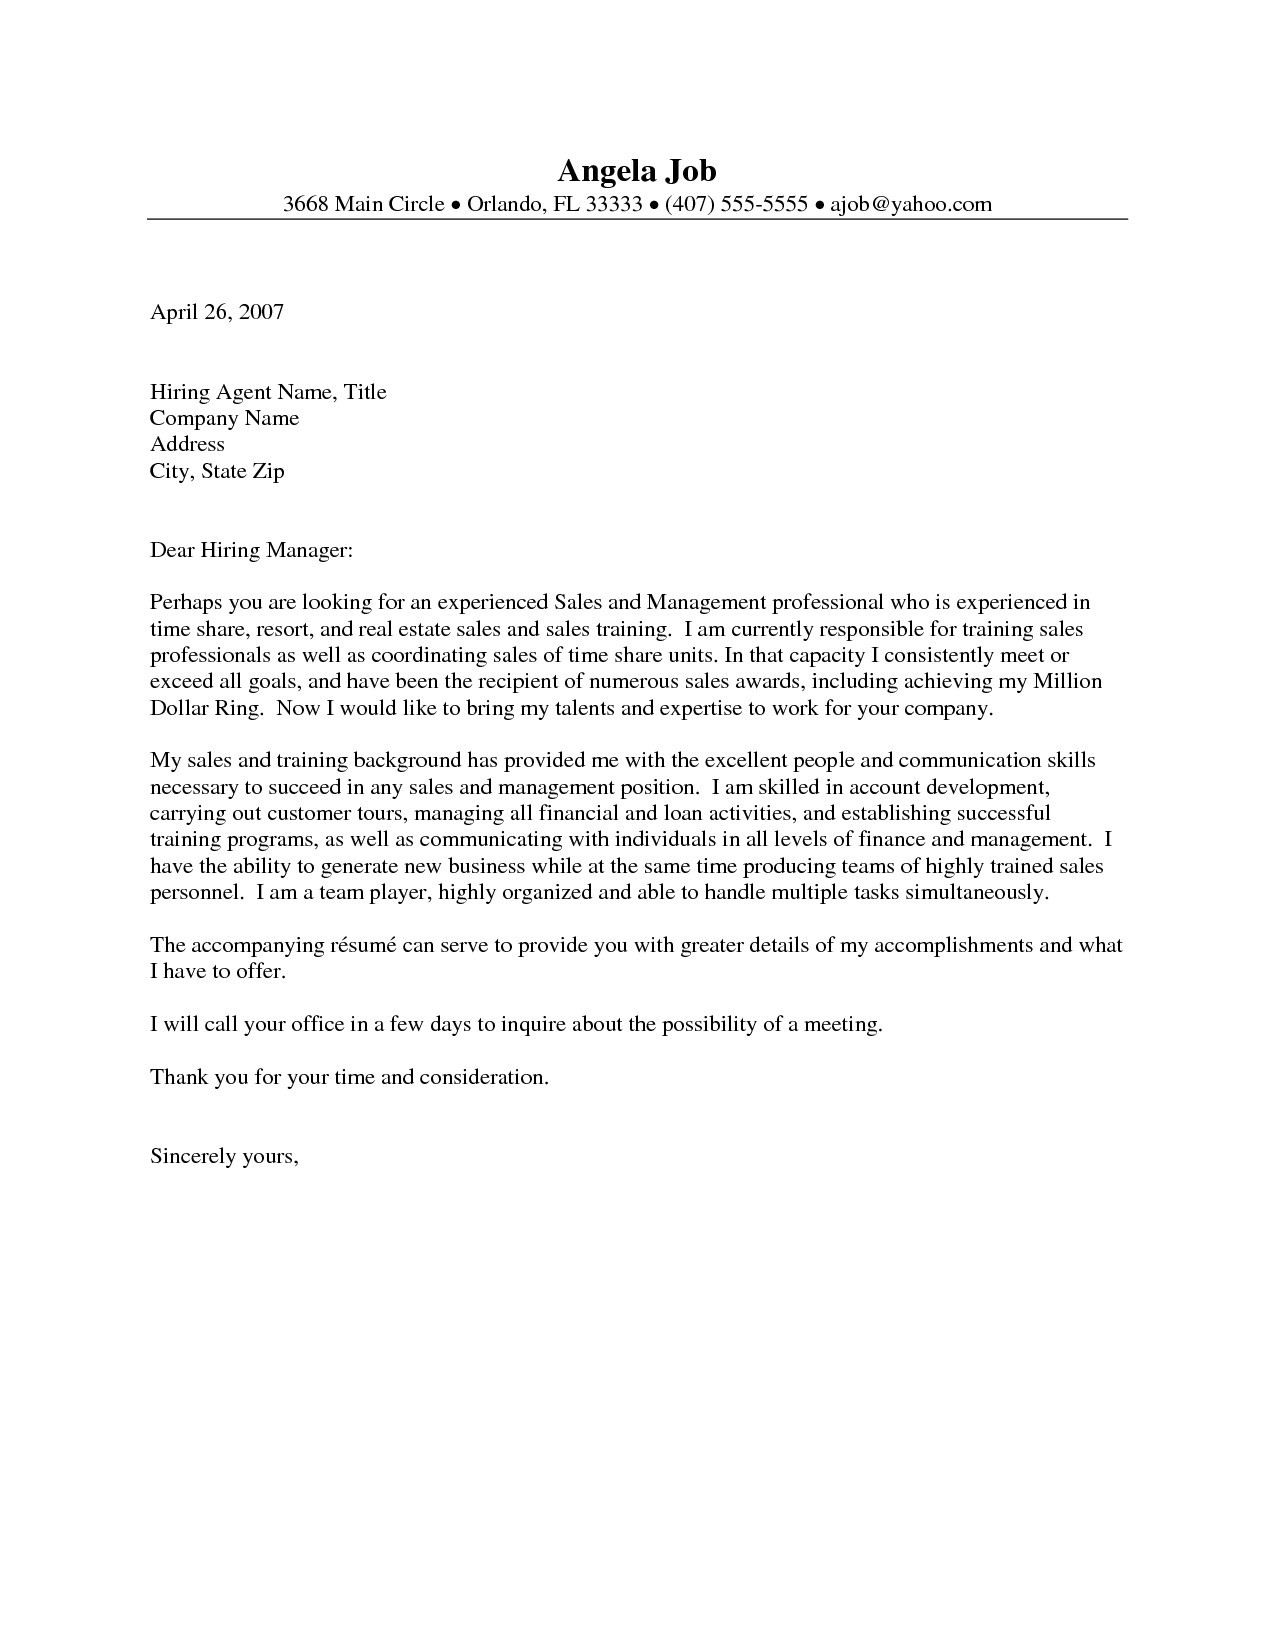 Real Estate Introduction Letter Template Examples Letter Cover - Real-estate-associate-cover-letter